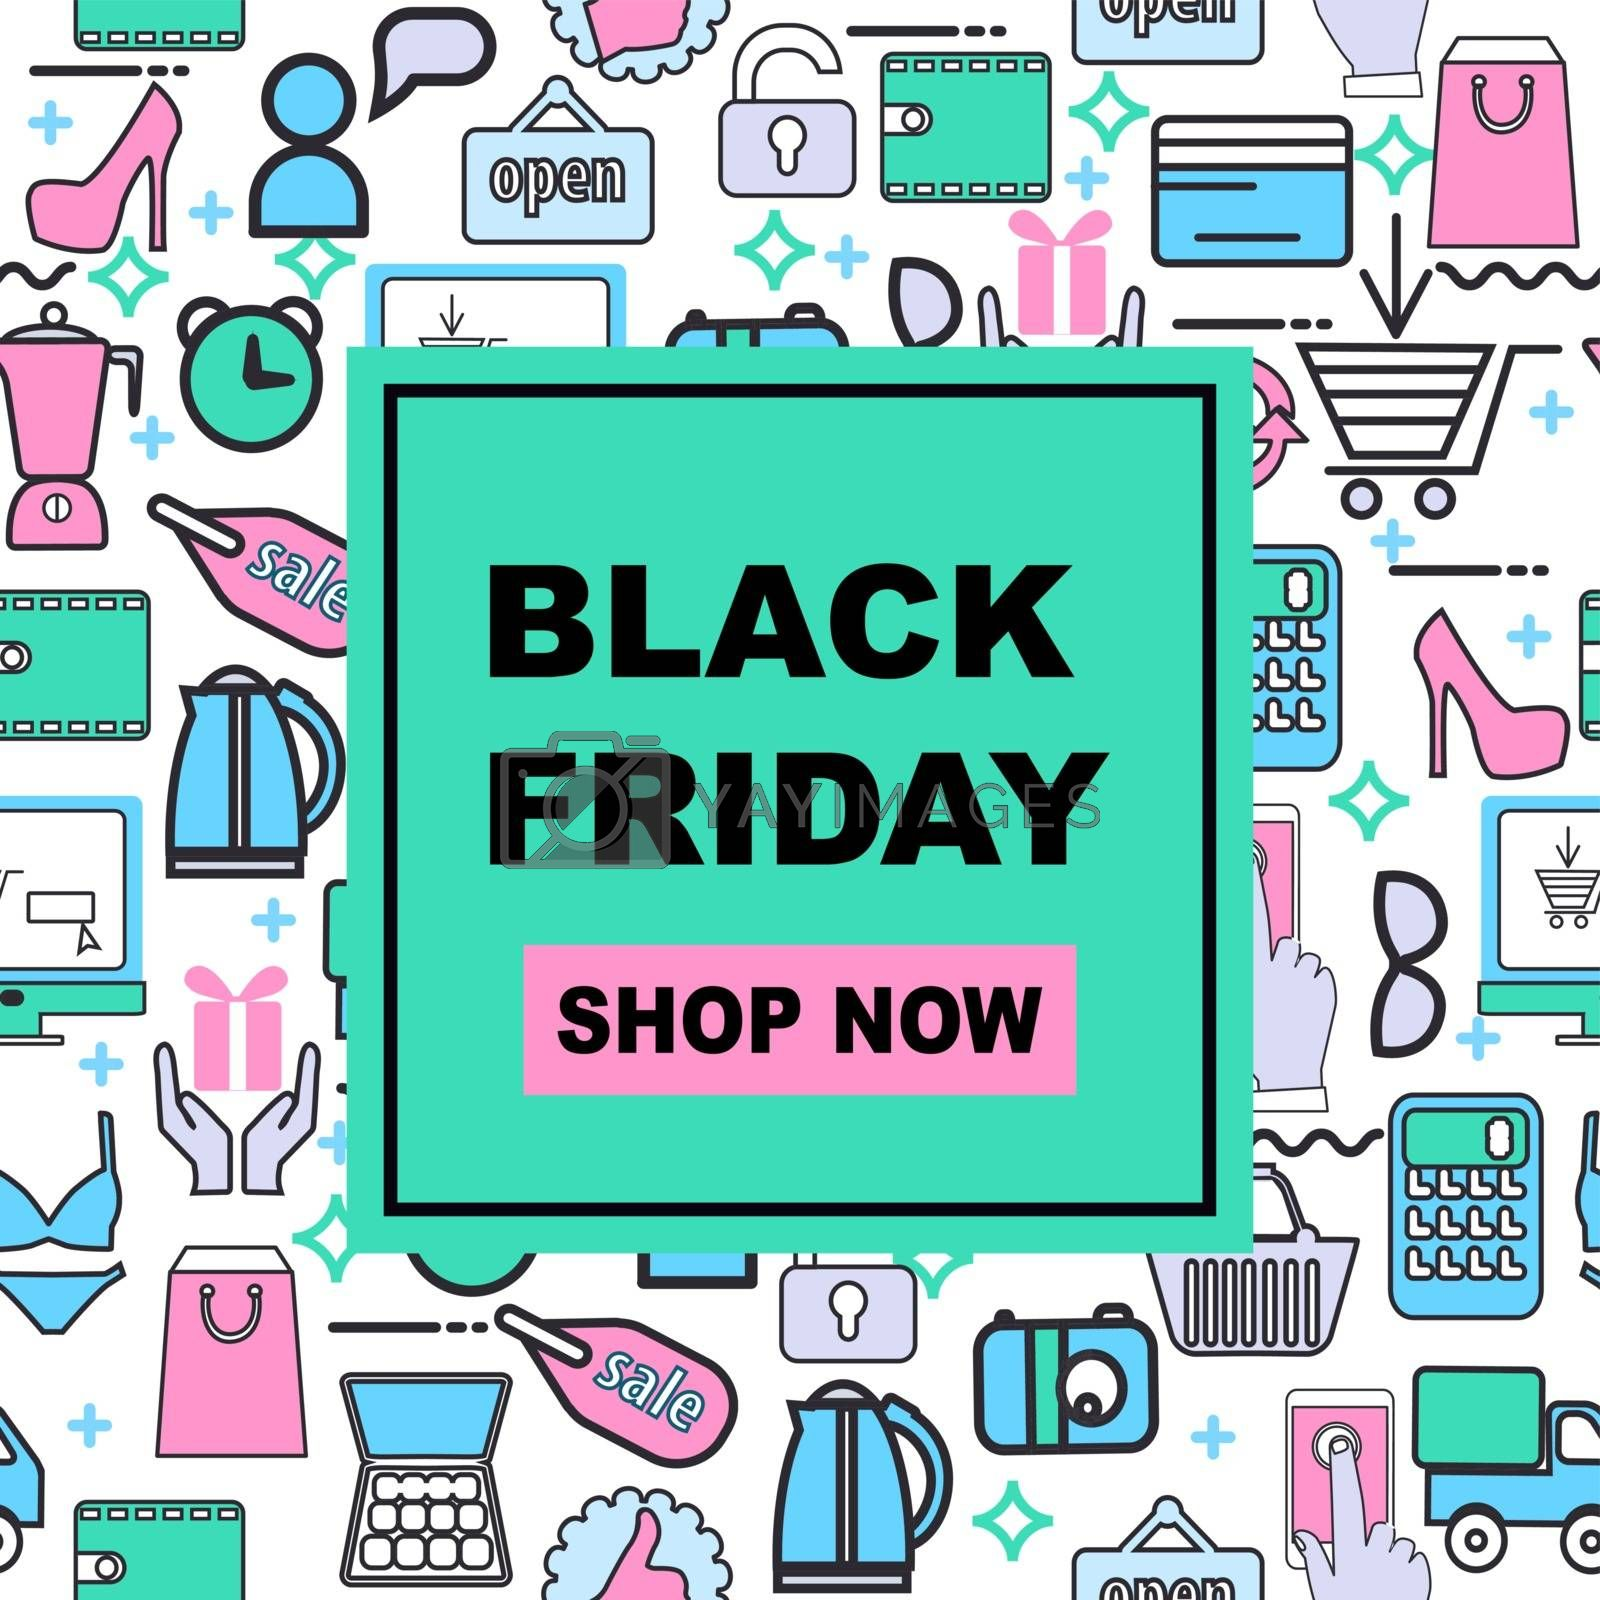 Vector illustration black friday sale banner background with shopping icons. Black Friday template for social media posts, banner, card design, etc.